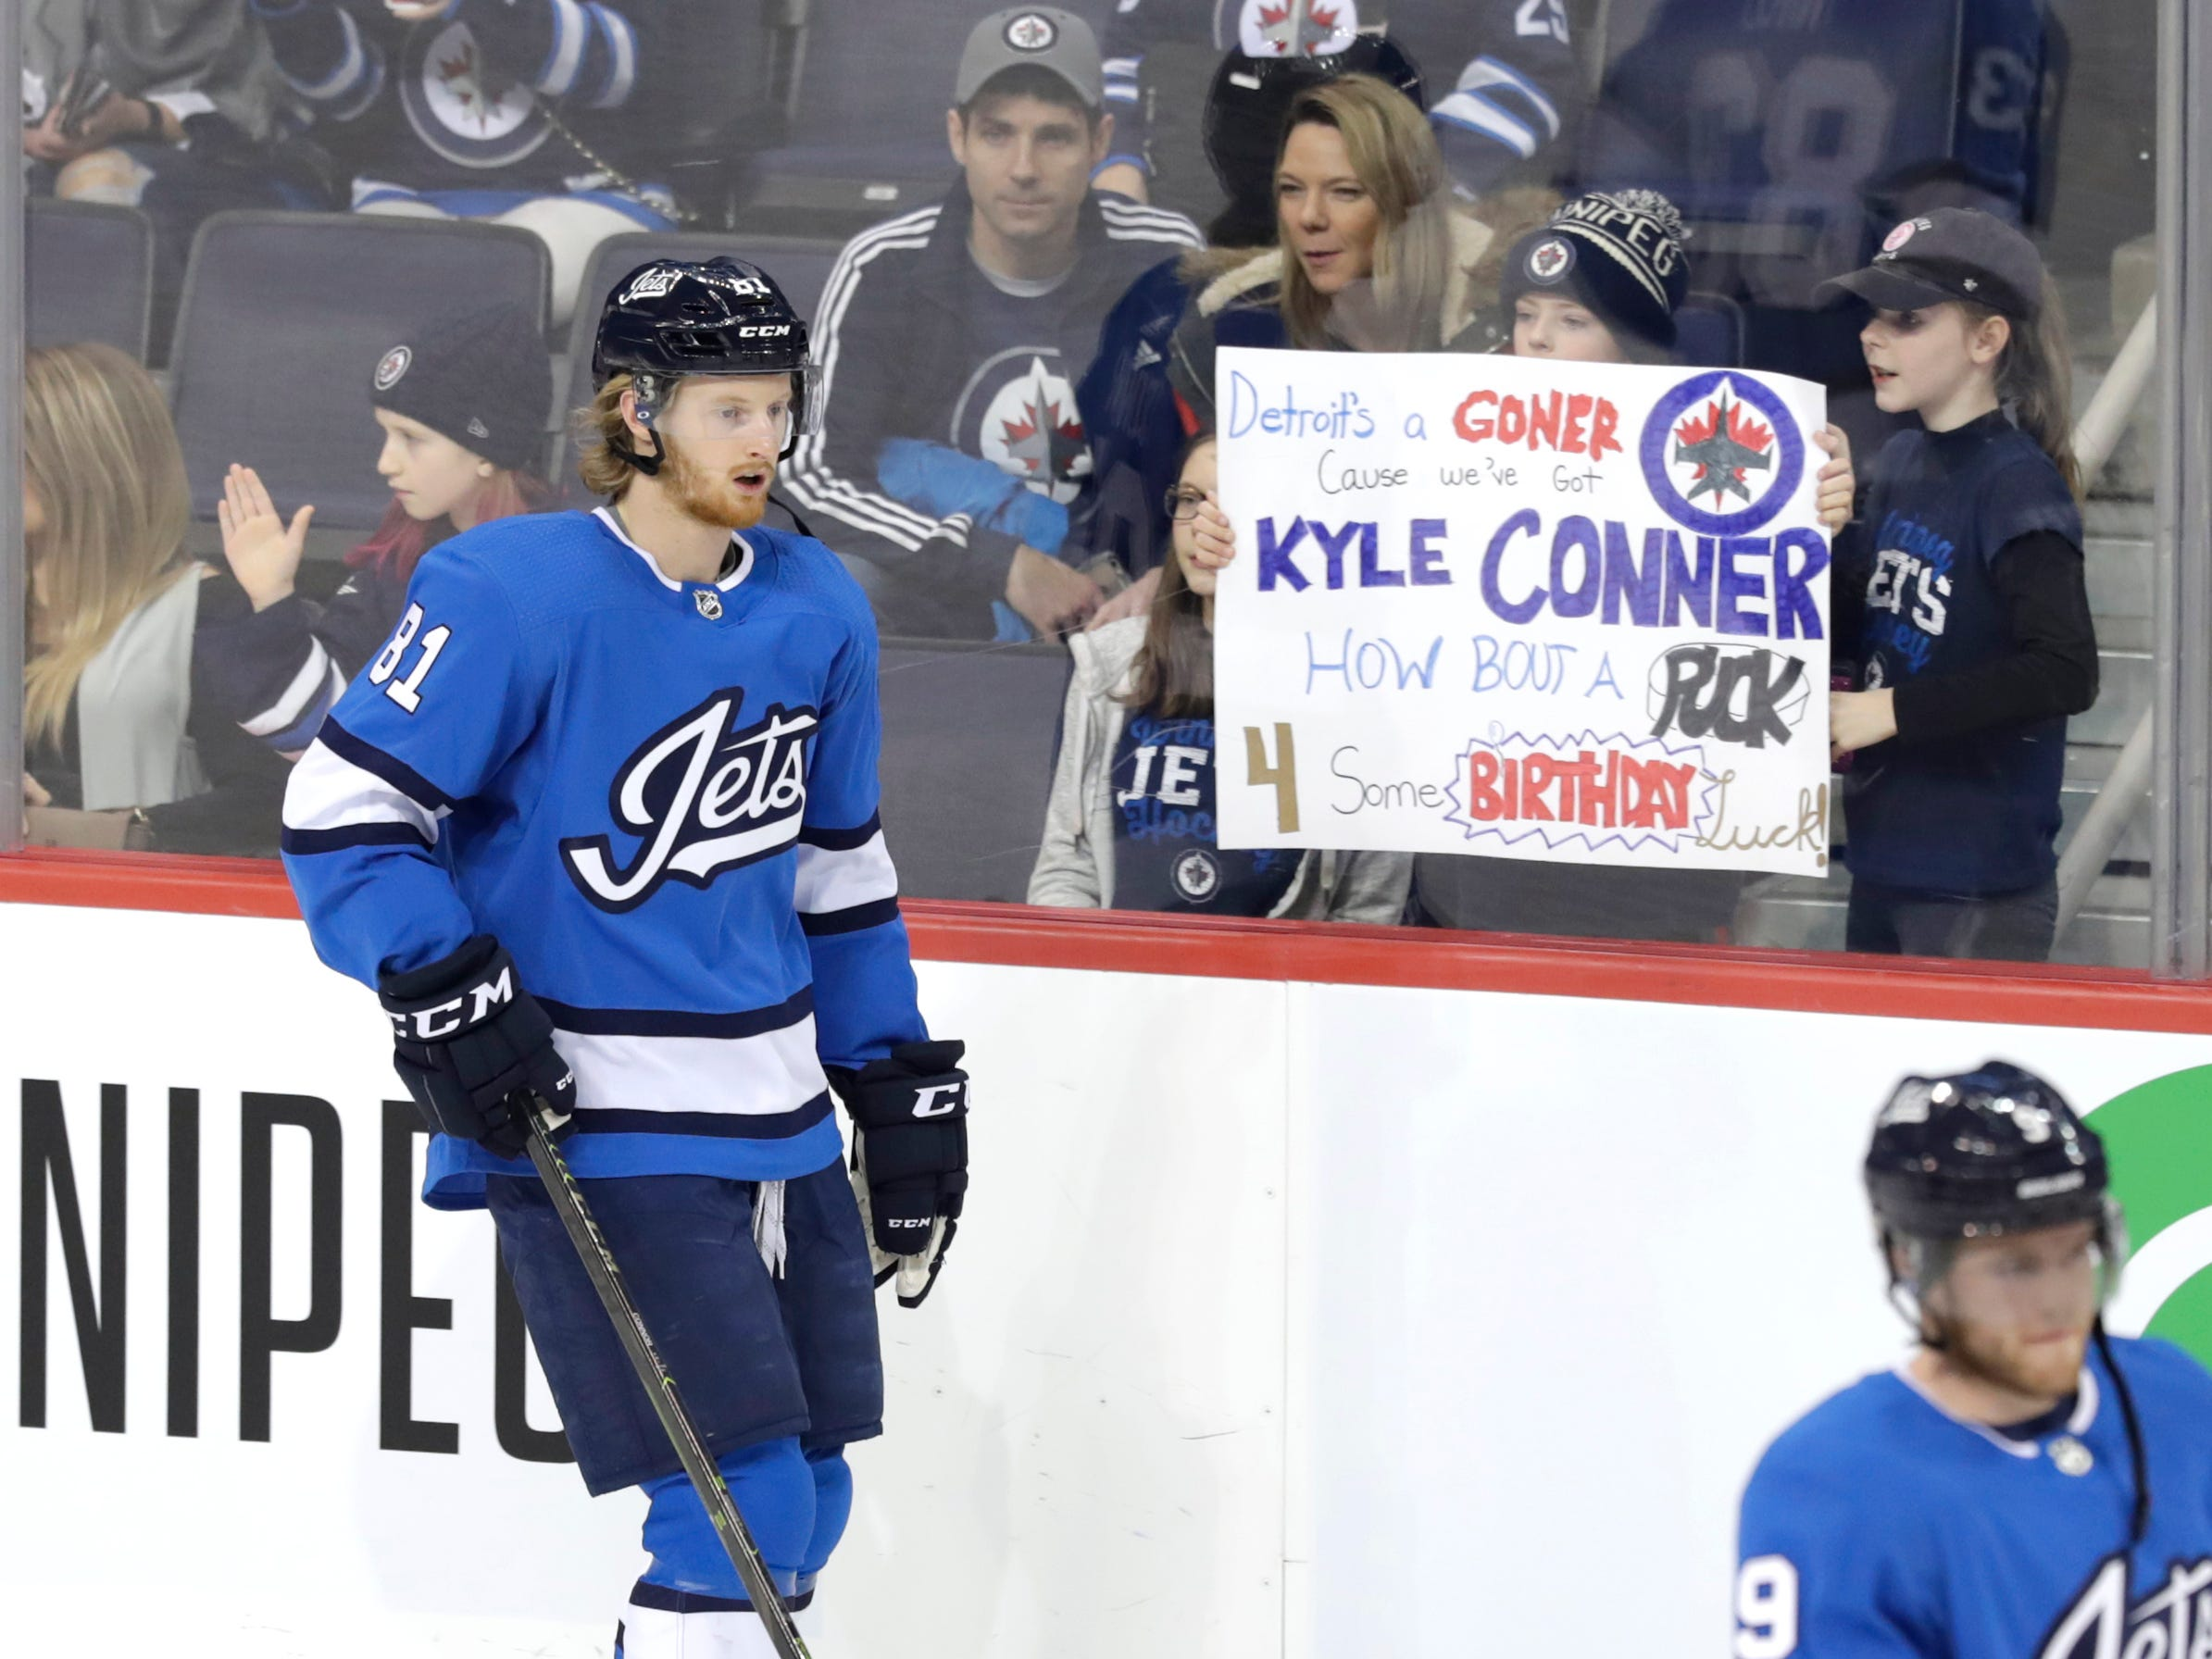 Winnipeg Jets left wing Kyle Connor skates past fans before a game against the Detroit Red Wings at Bell MTS Place, Jan. 11, 2019 in Winnipeg.